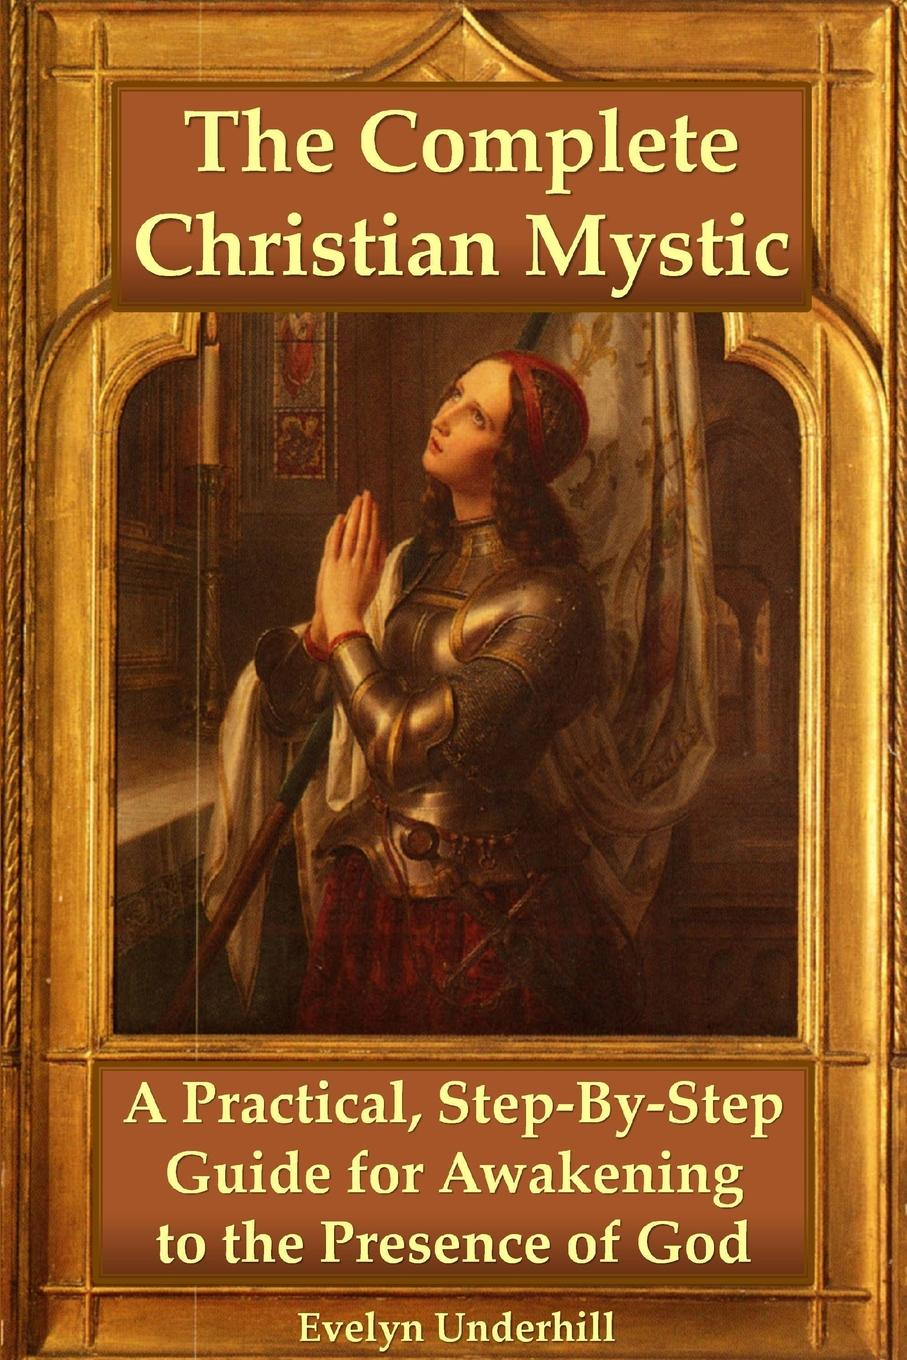 Evelyn Underhill The Complete Christian Mystic. A Practical, Step-By-Step Guide for Awakening to the Presence of God evelyn underhill the complete christian mystic a practical step by step guide for awakening to the presence of god